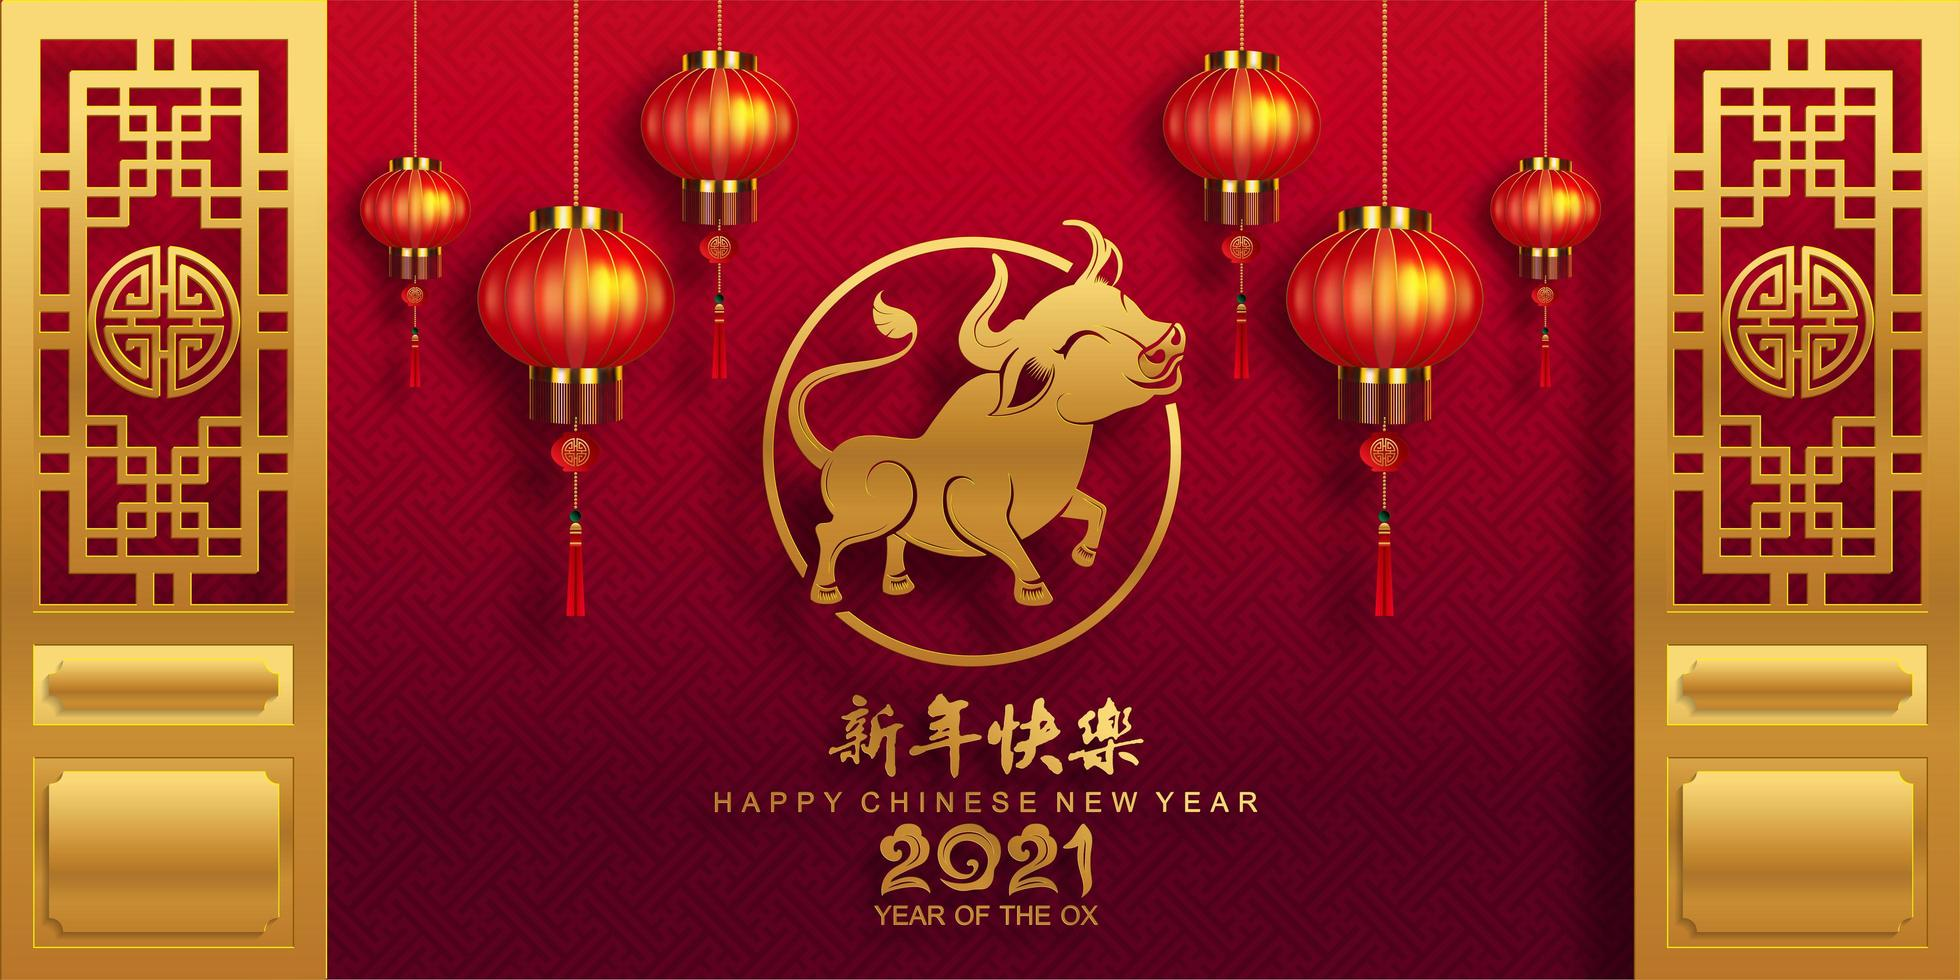 Chinese new year 2021 banner with lanterns and ox vector